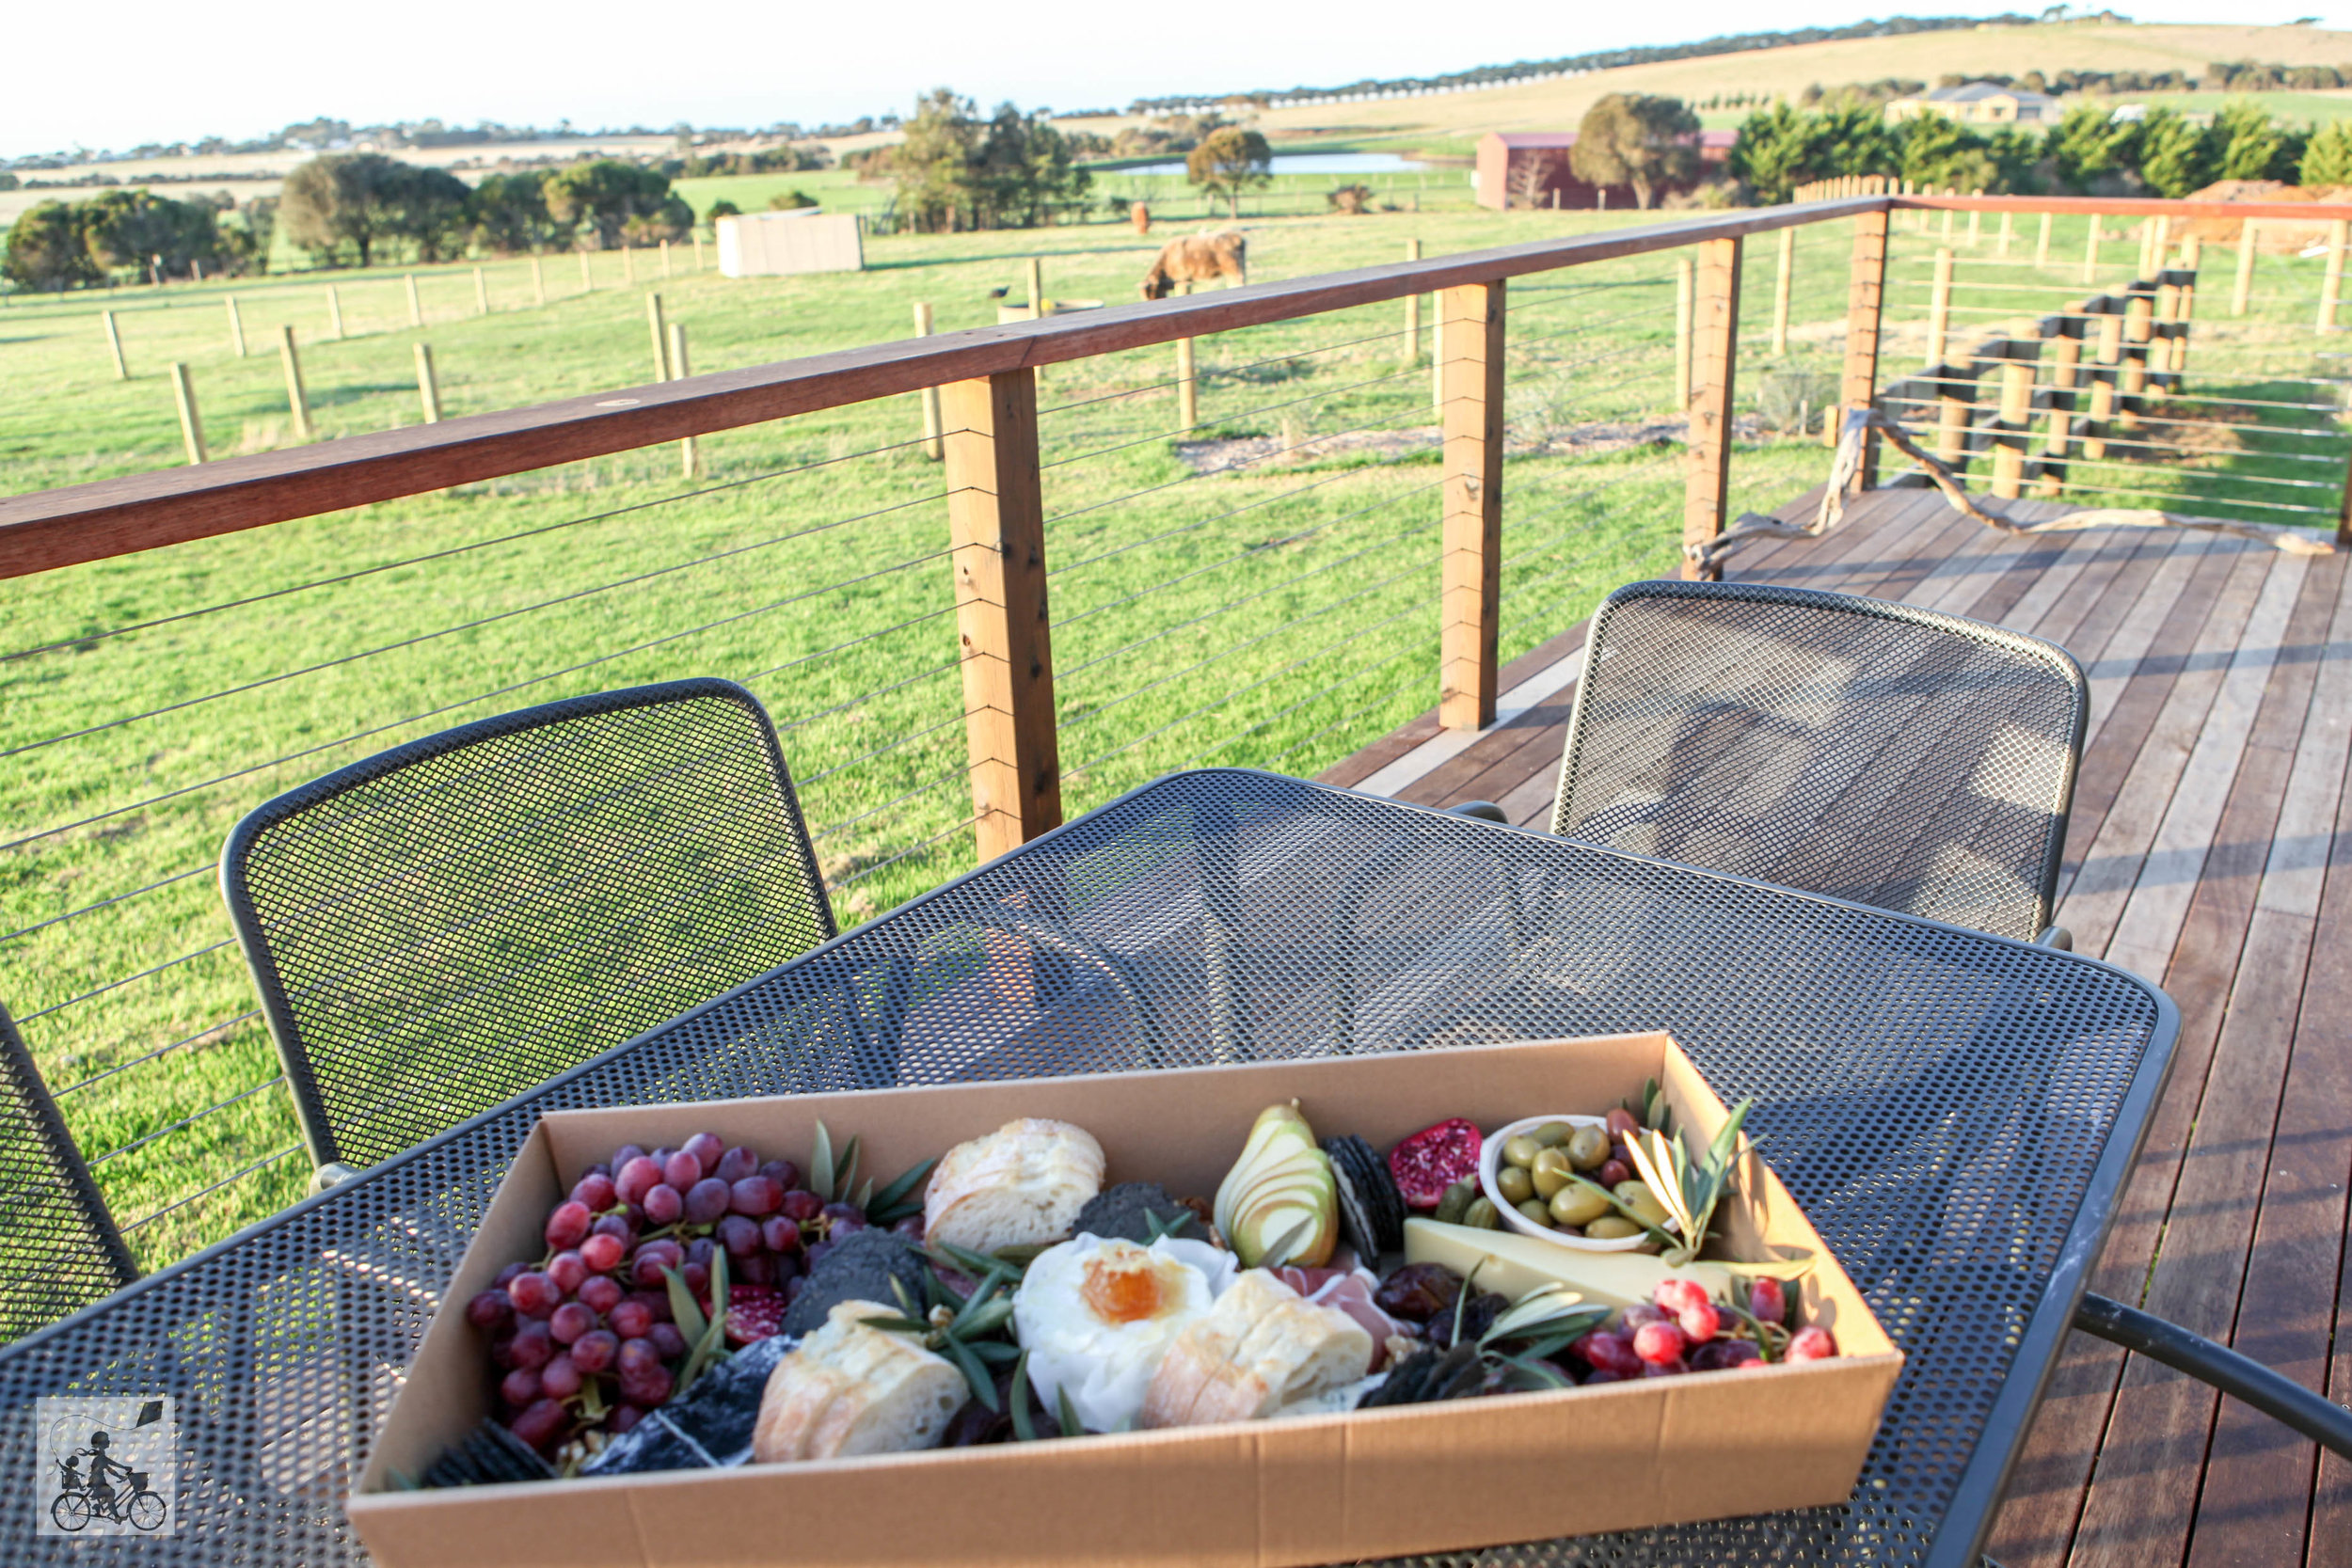 Mamma Knows South - the pantry, phillip island